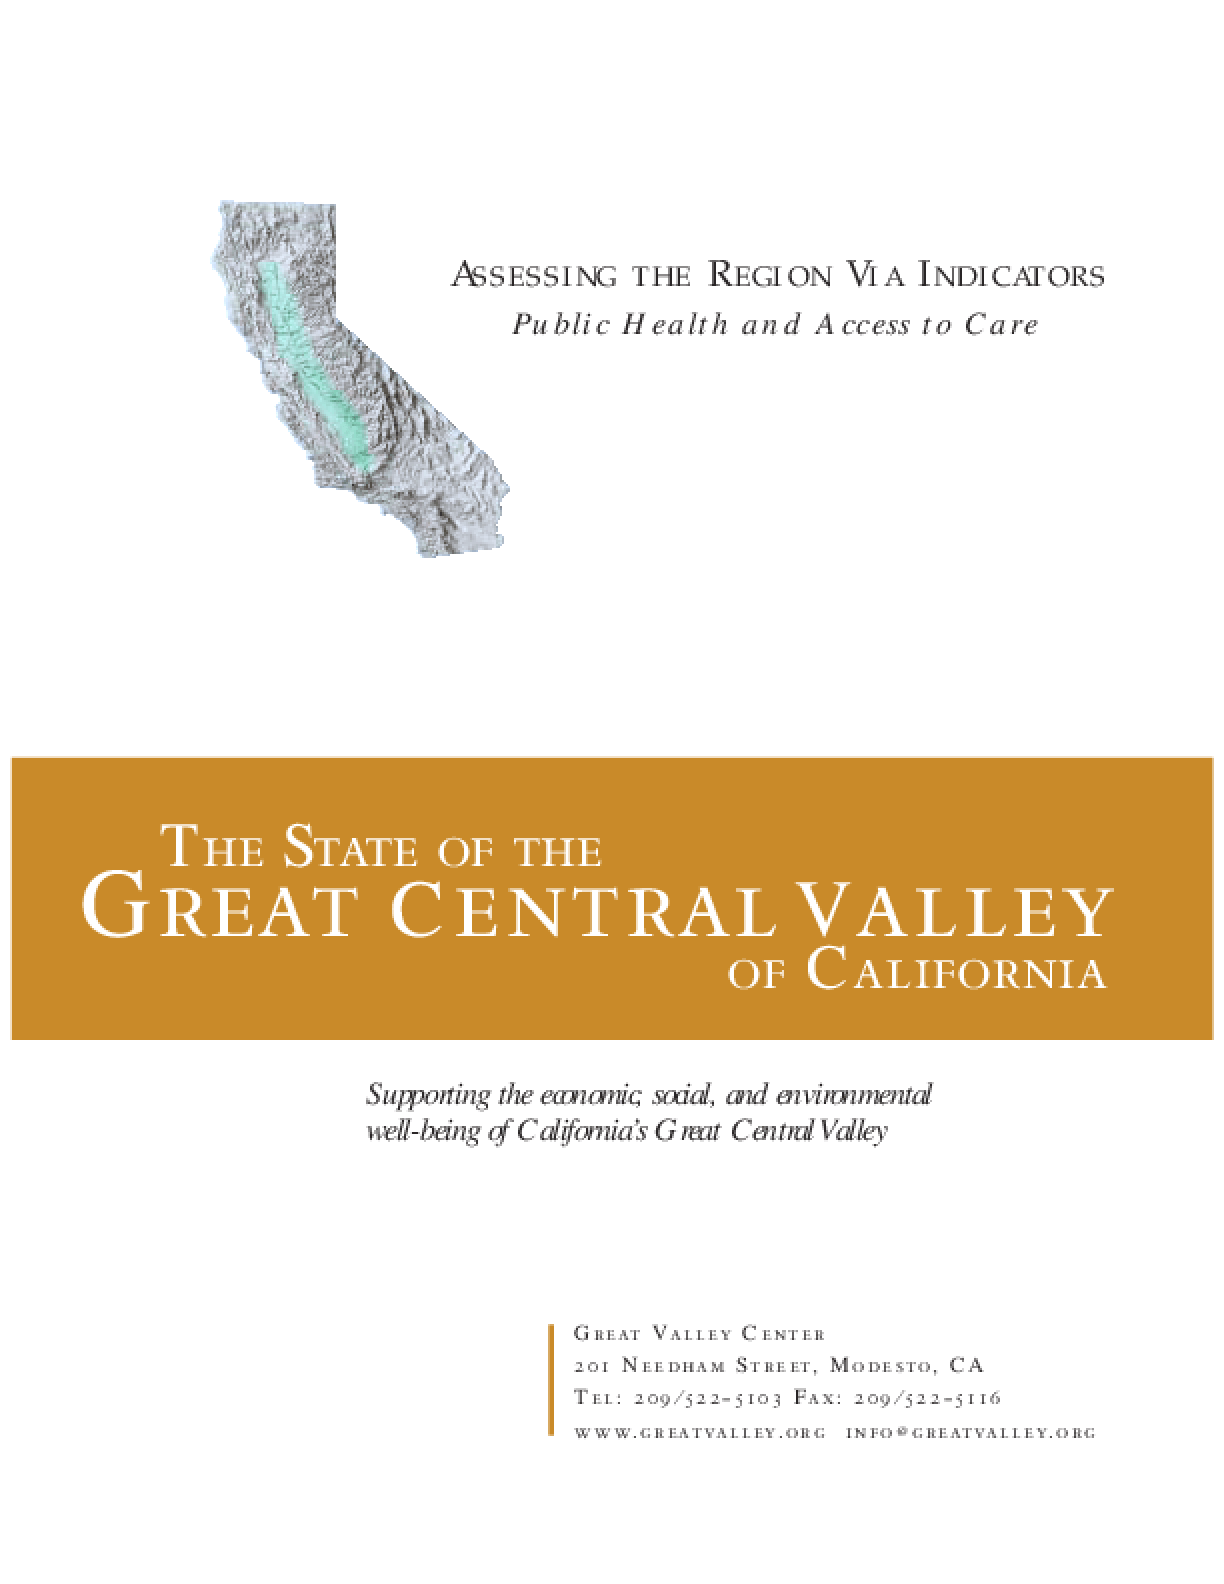 The State of the Great Central Valley -- Public Health and Access to Care